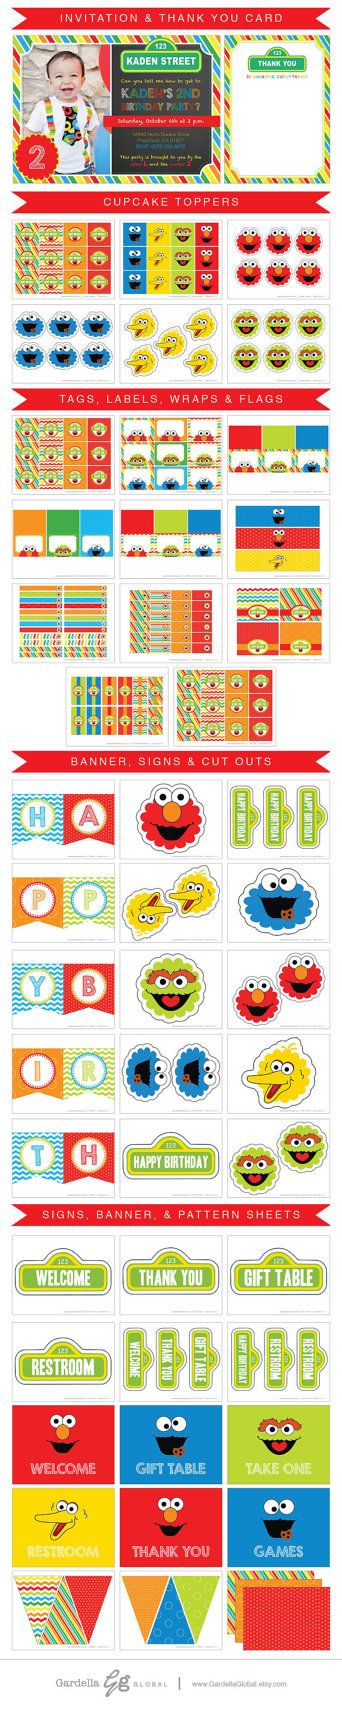 Elmo Invitation Elmo Invite Elmo Birthday Sesame por GardellaGlobal